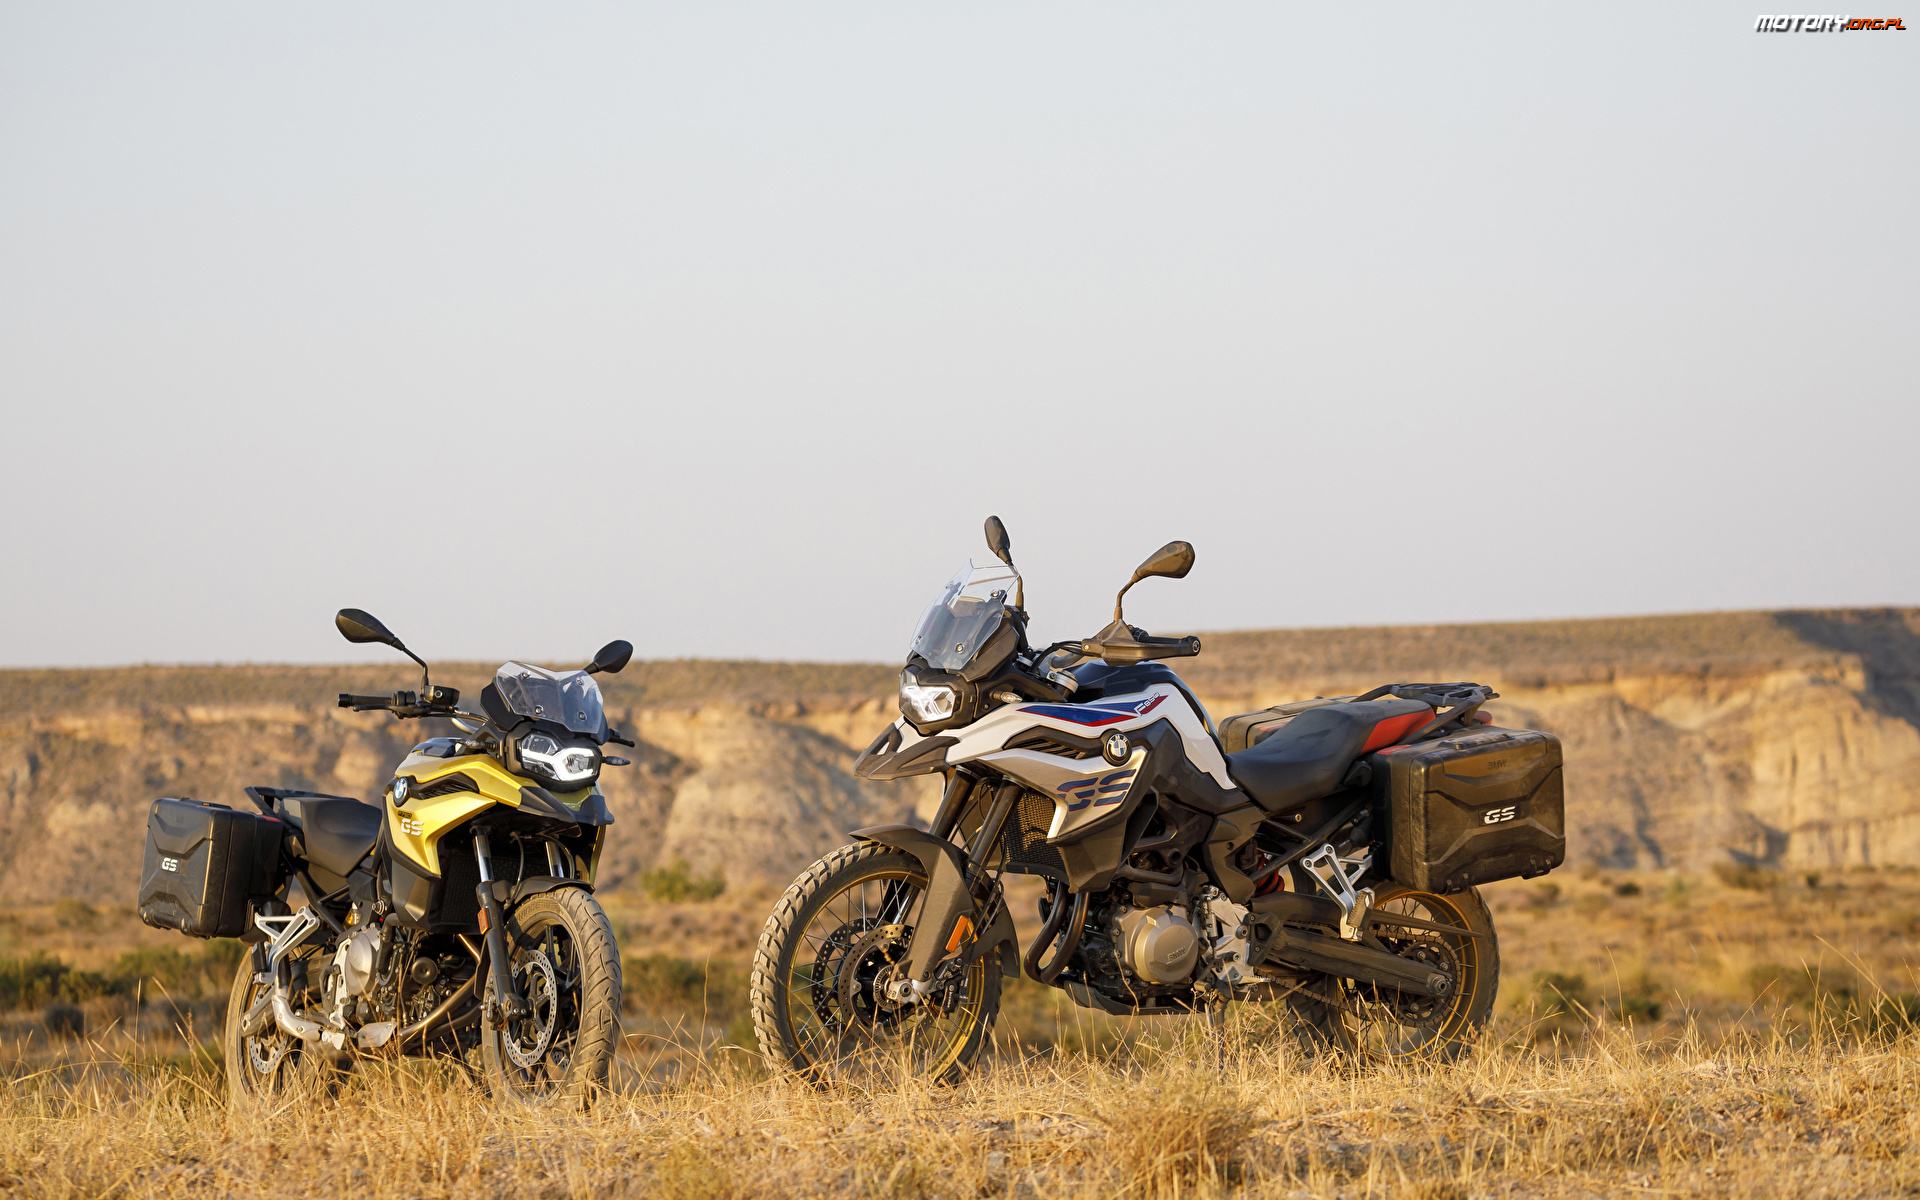 2018, BMW F850GS, Motocykle, Dwa, BMW F750GS